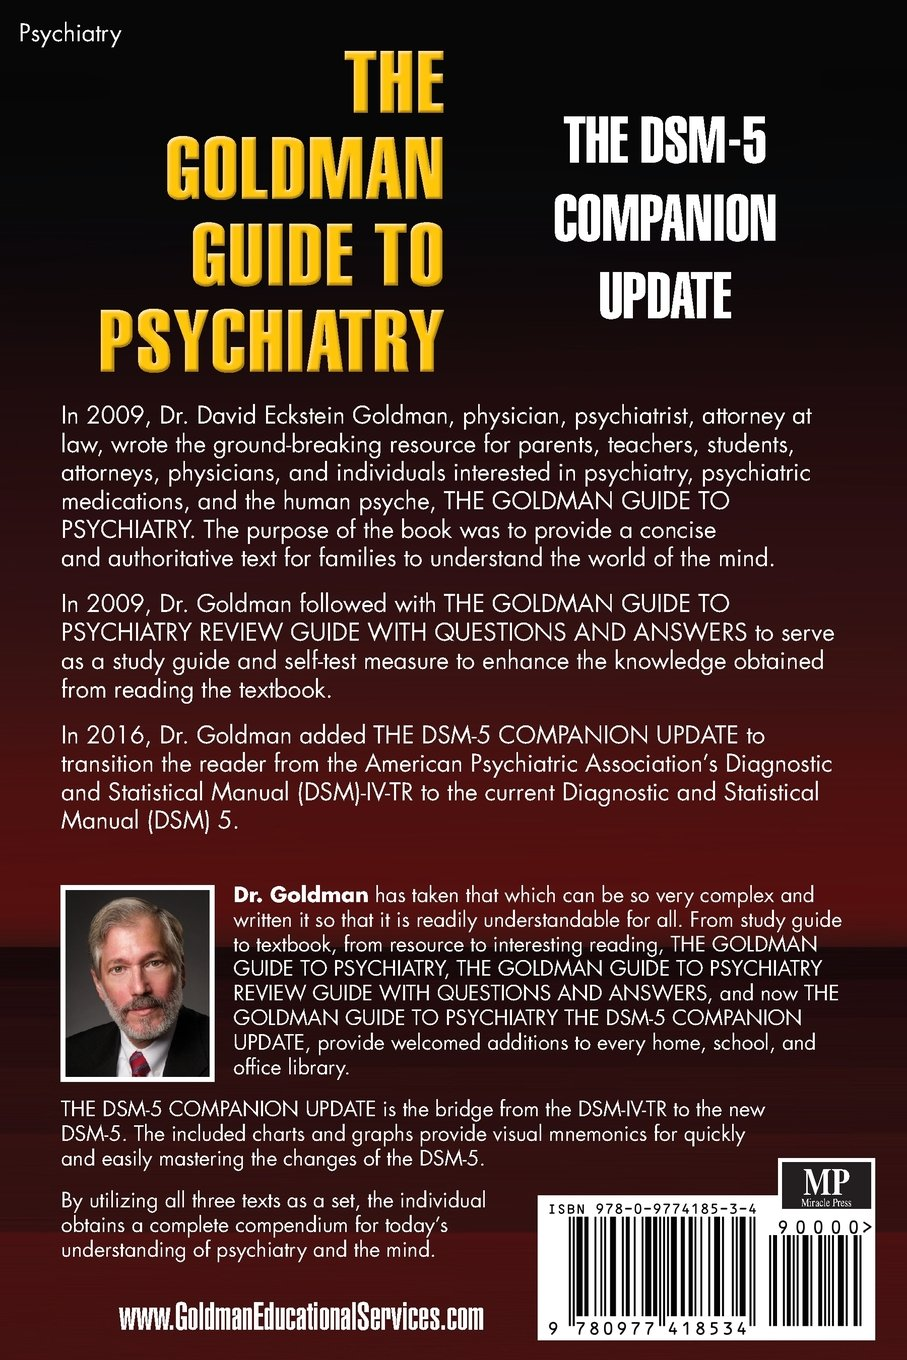 The goldman guide to psychiatry the dsm 5 companion update dr david the goldman guide to psychiatry the dsm 5 companion update dr david eckstein goldman 9780977418534 amazon books fandeluxe Image collections